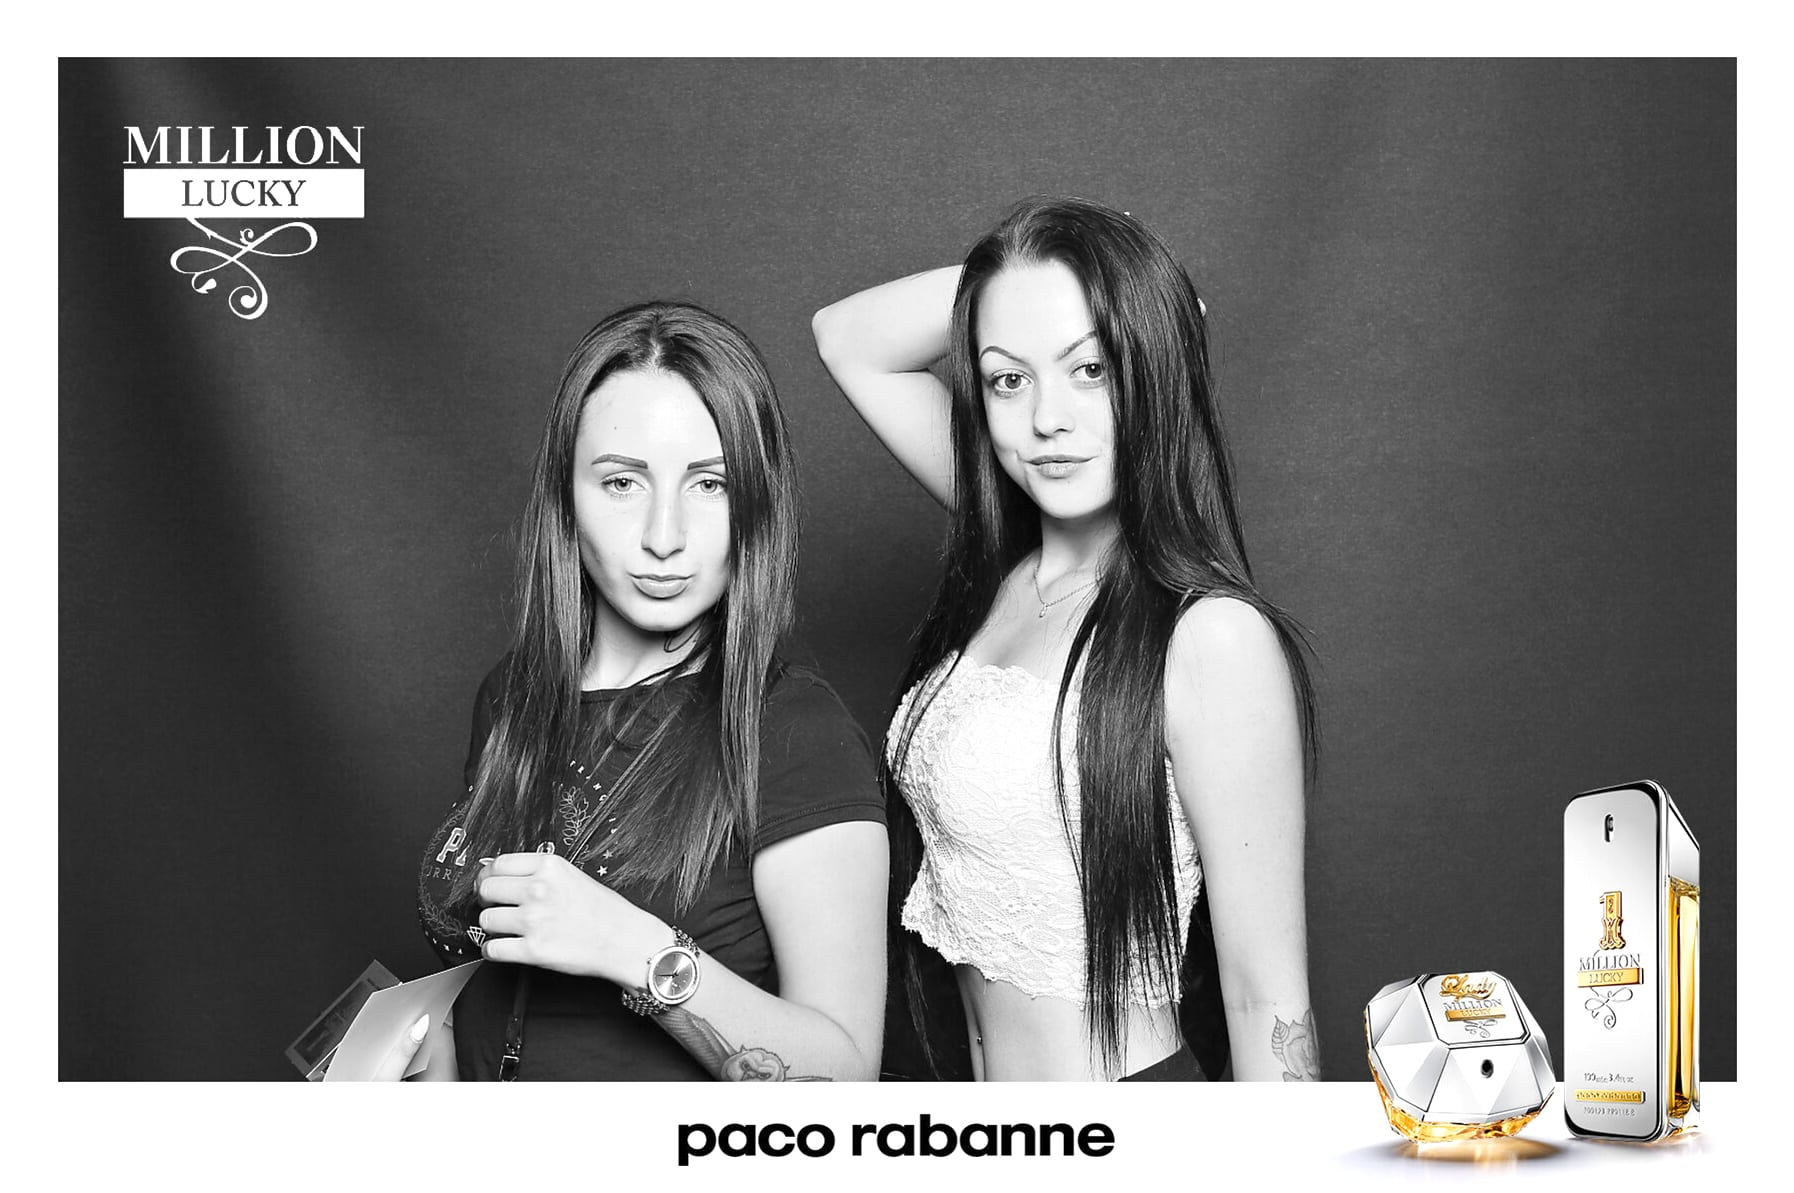 fotokoutek-paco-rabanne-million-lucky-11-9-2018-483752